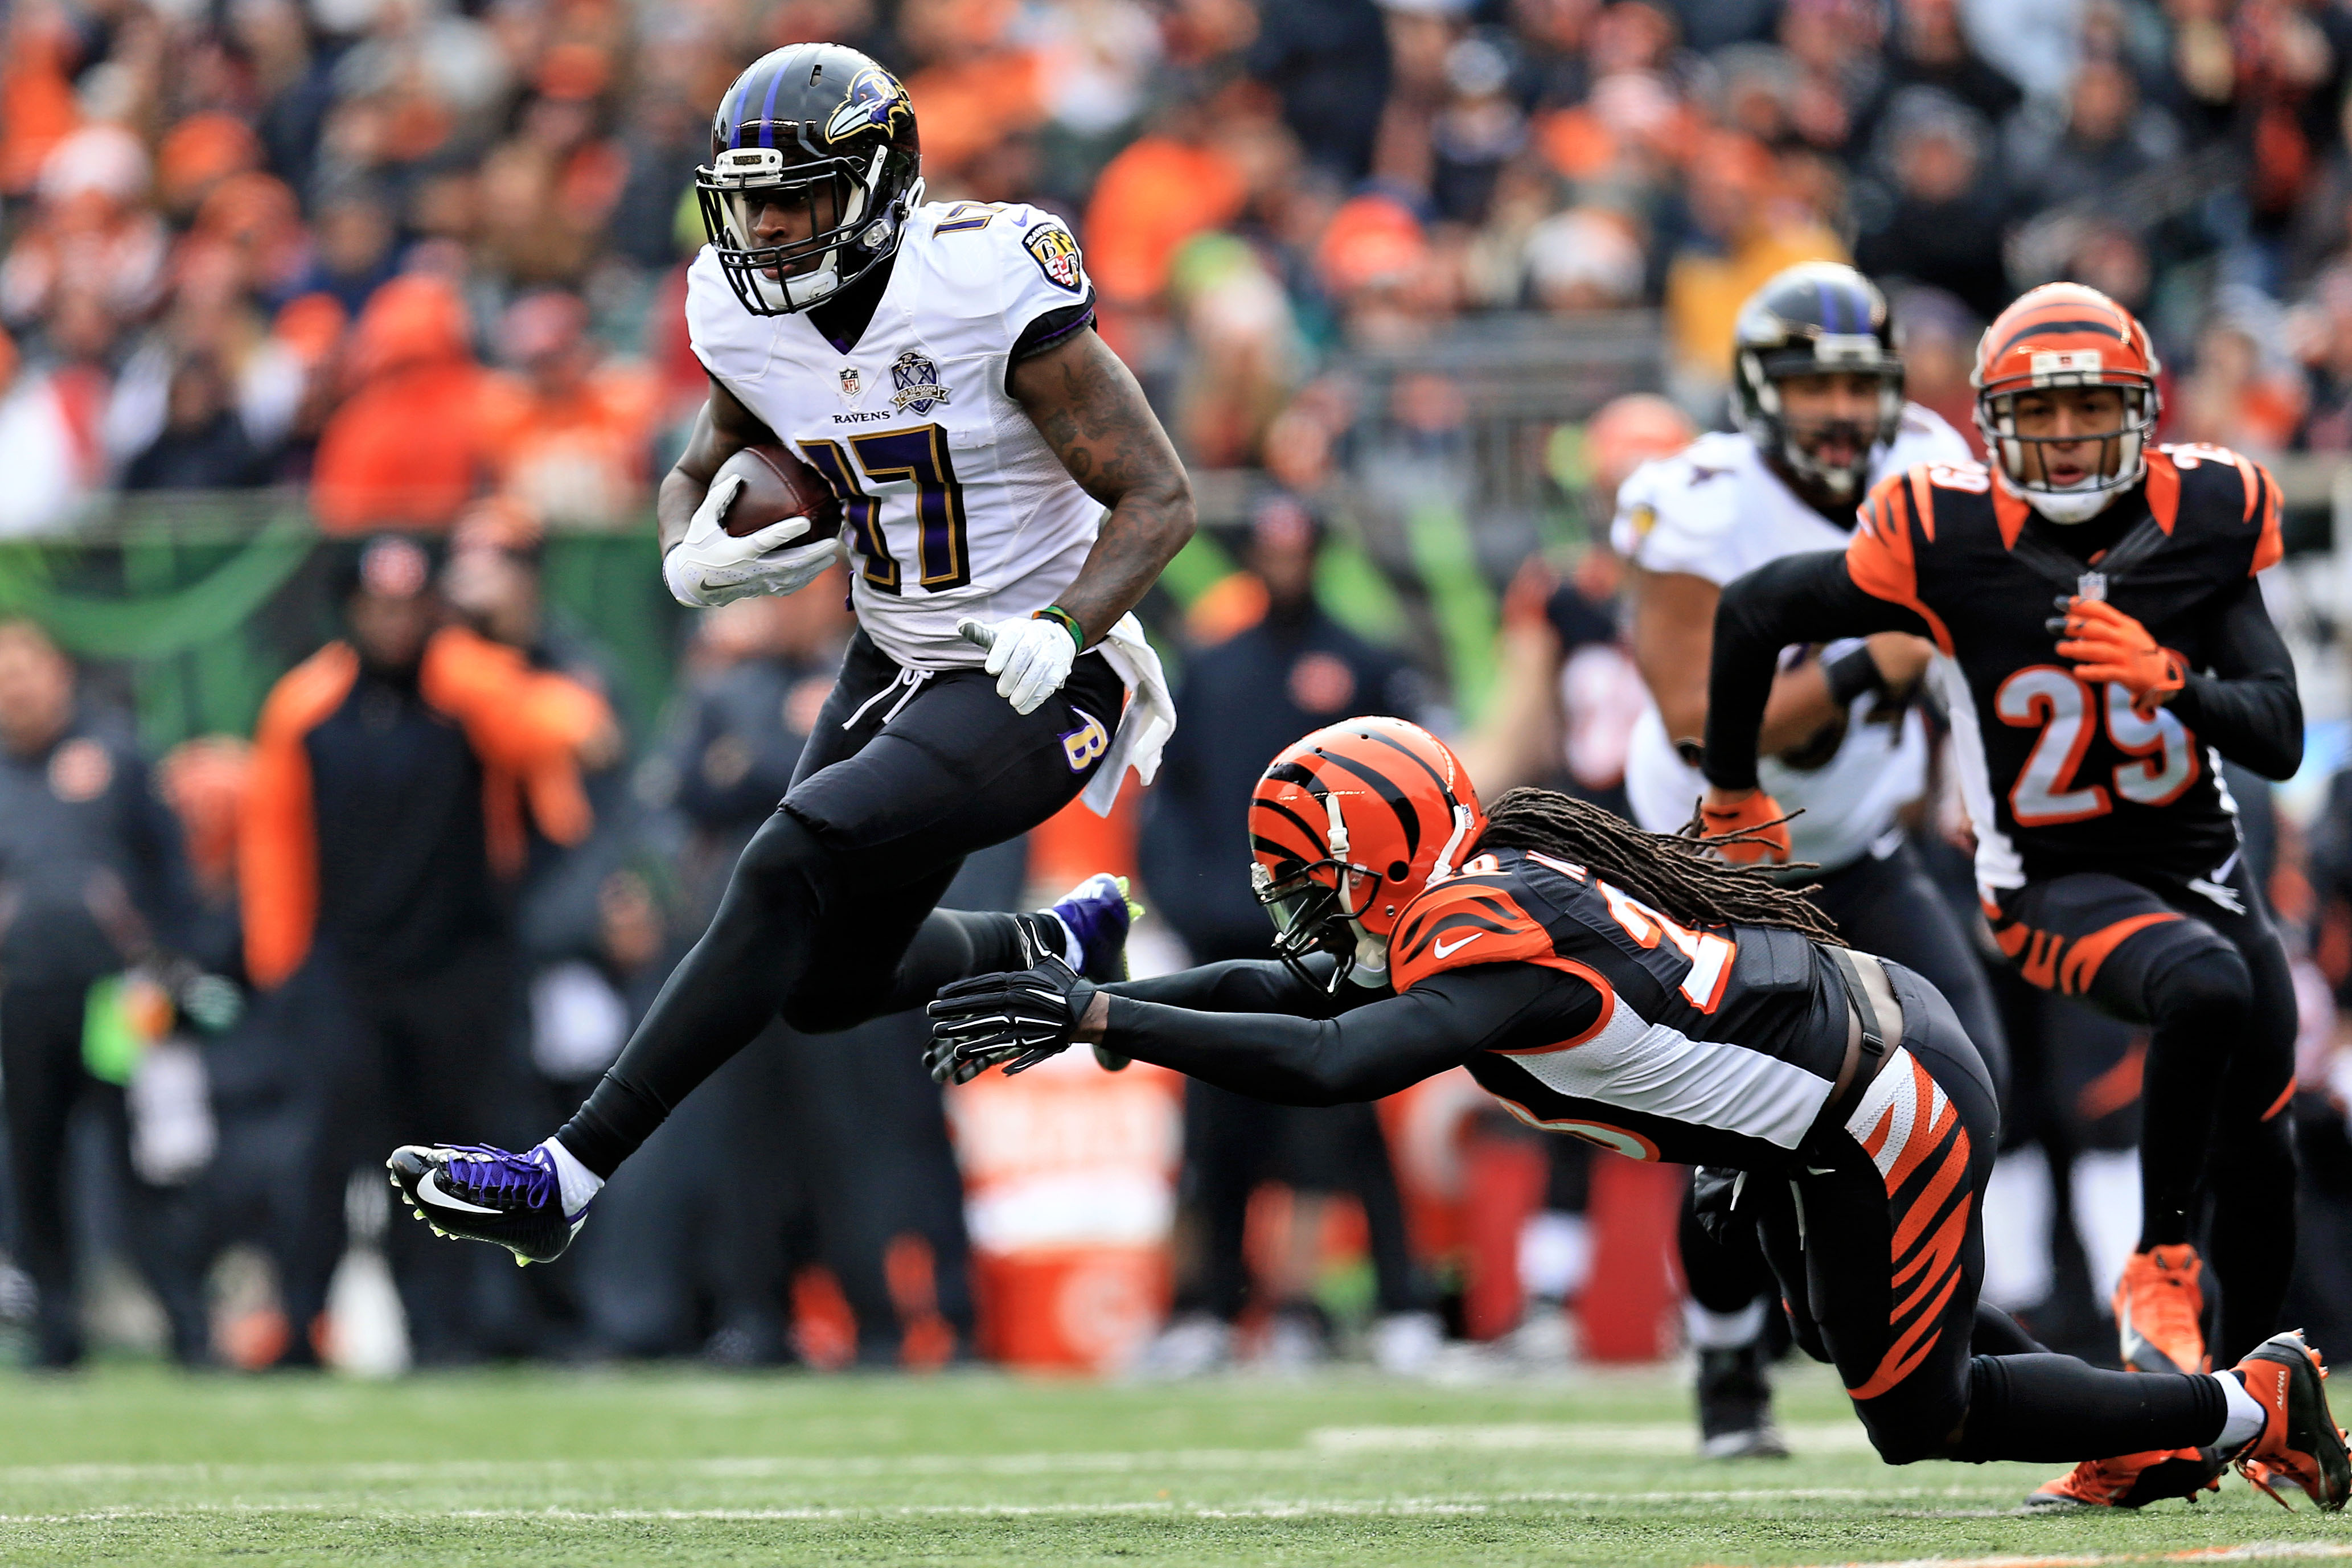 New Bills receiver Jeremy Butler began his NFL career with the Ravens. (Photo by Andrew Weber/Getty Images)